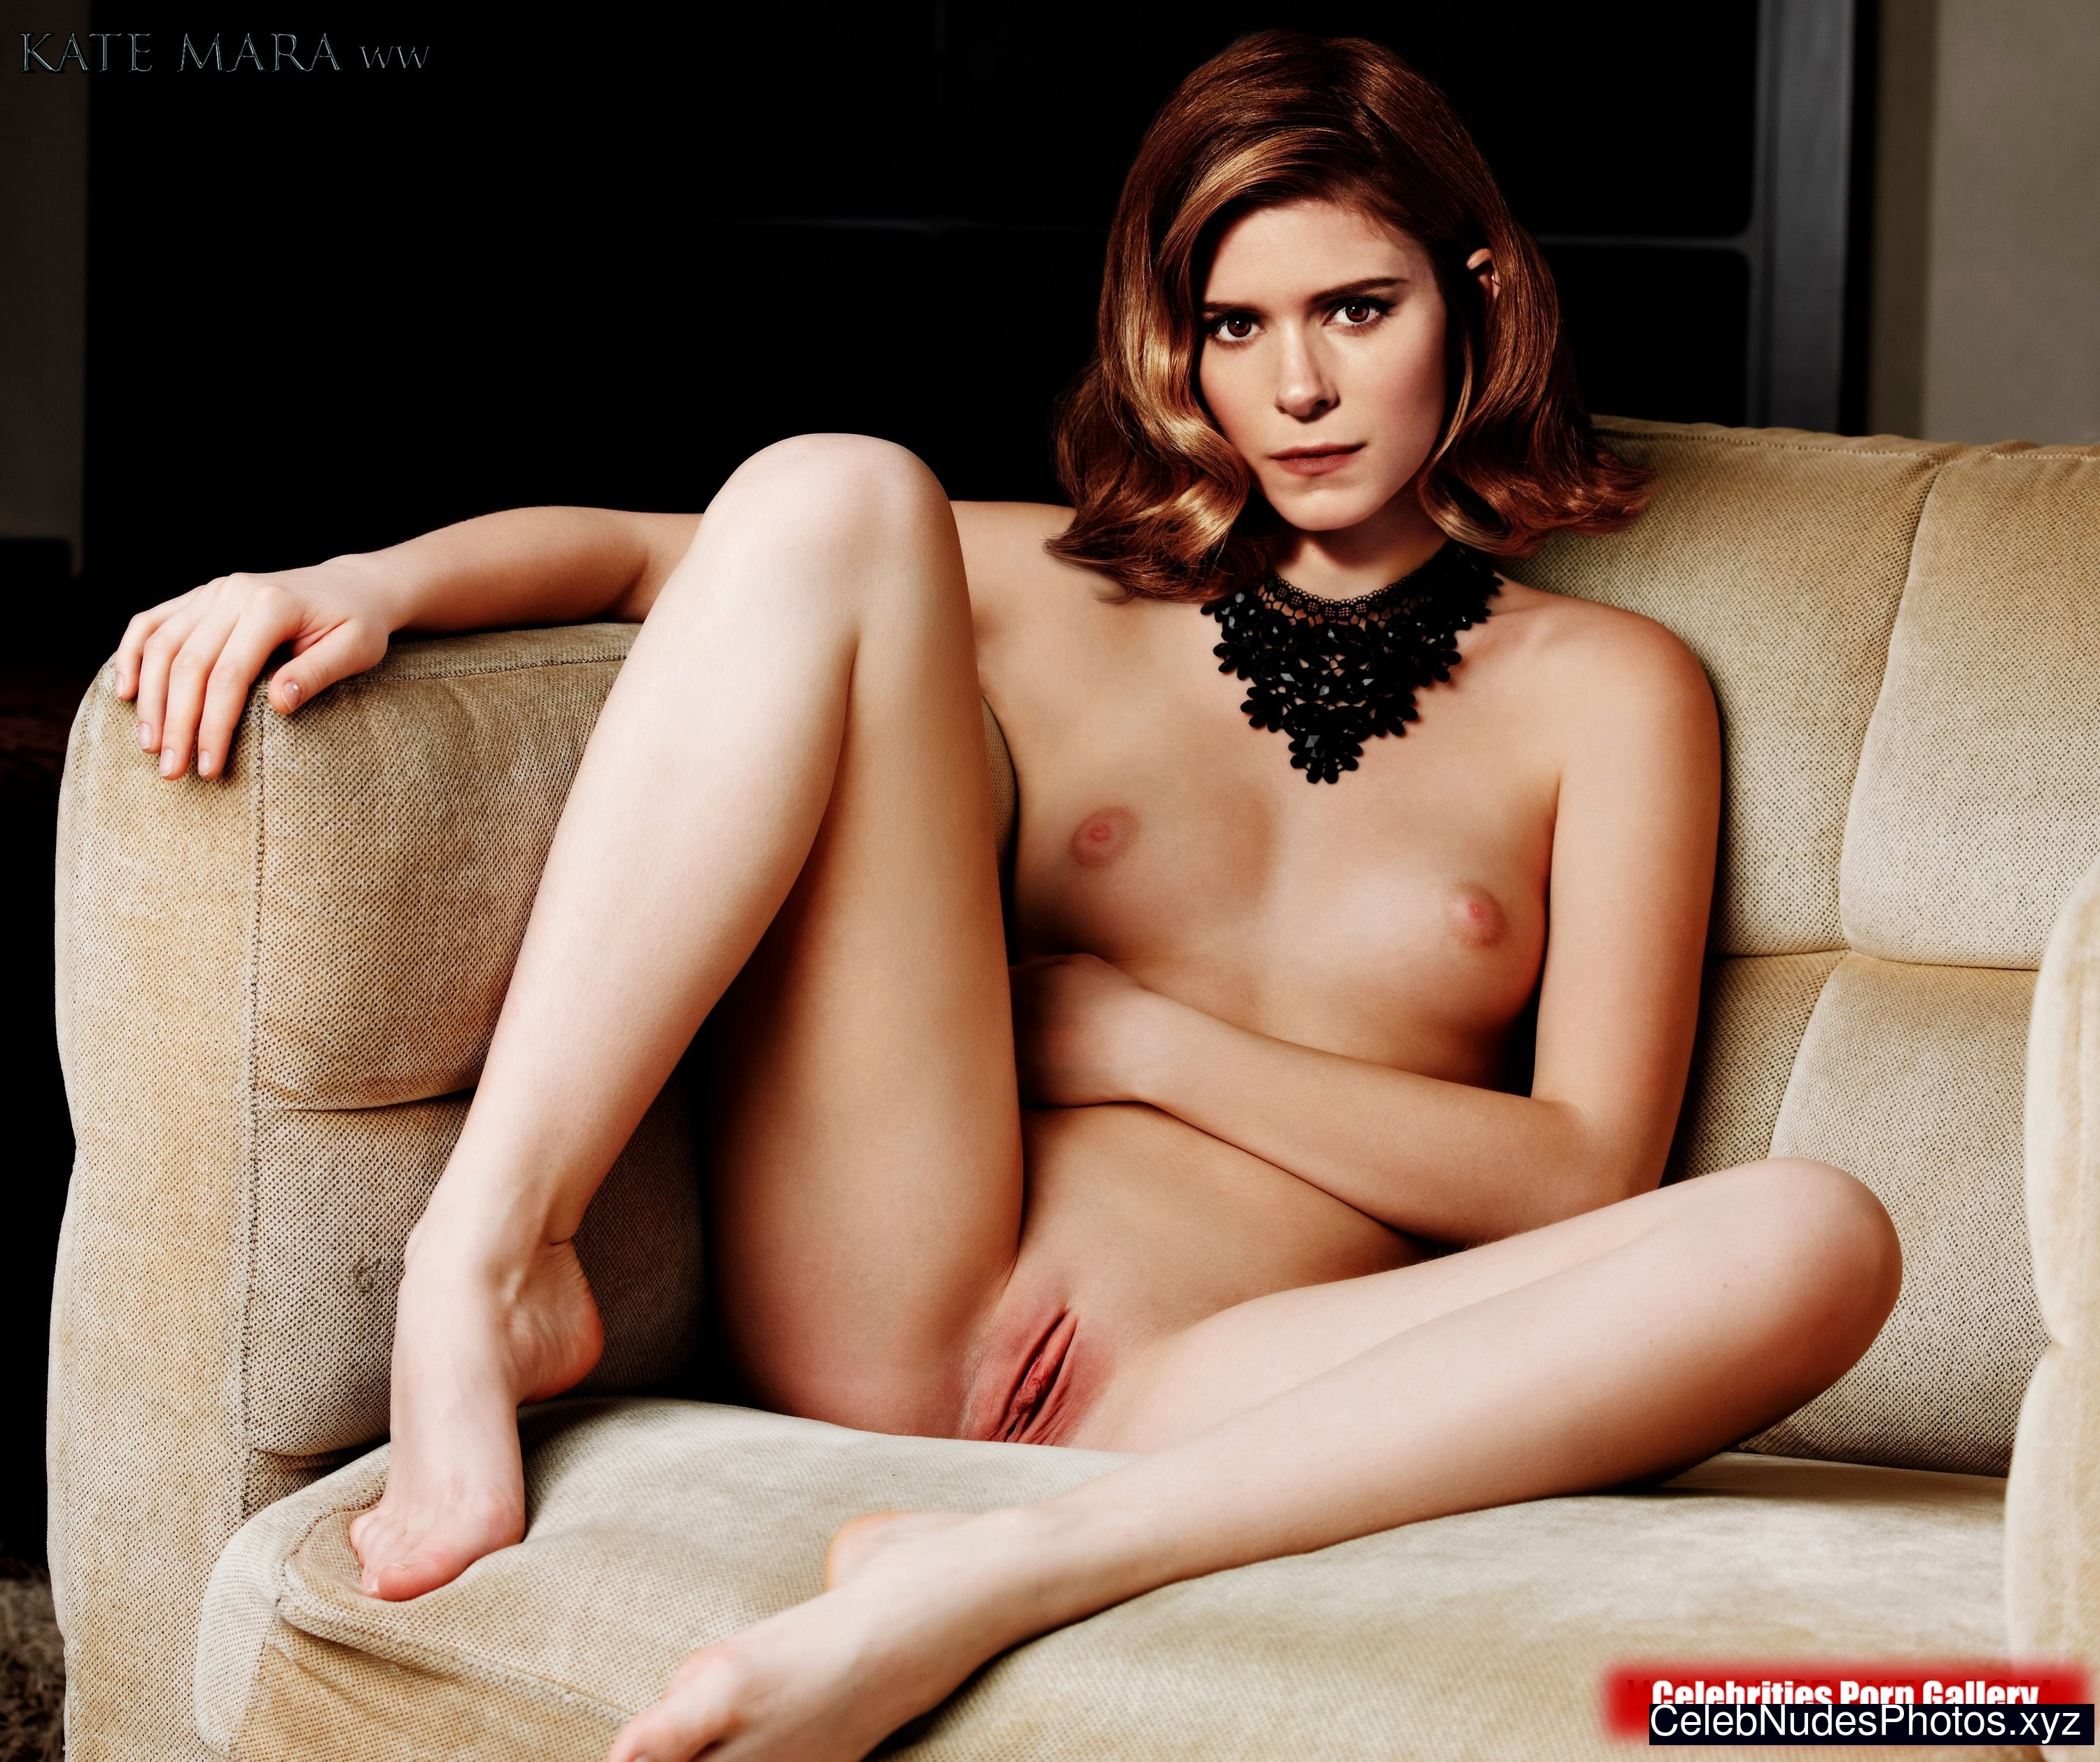 Think Kate mara nude feet